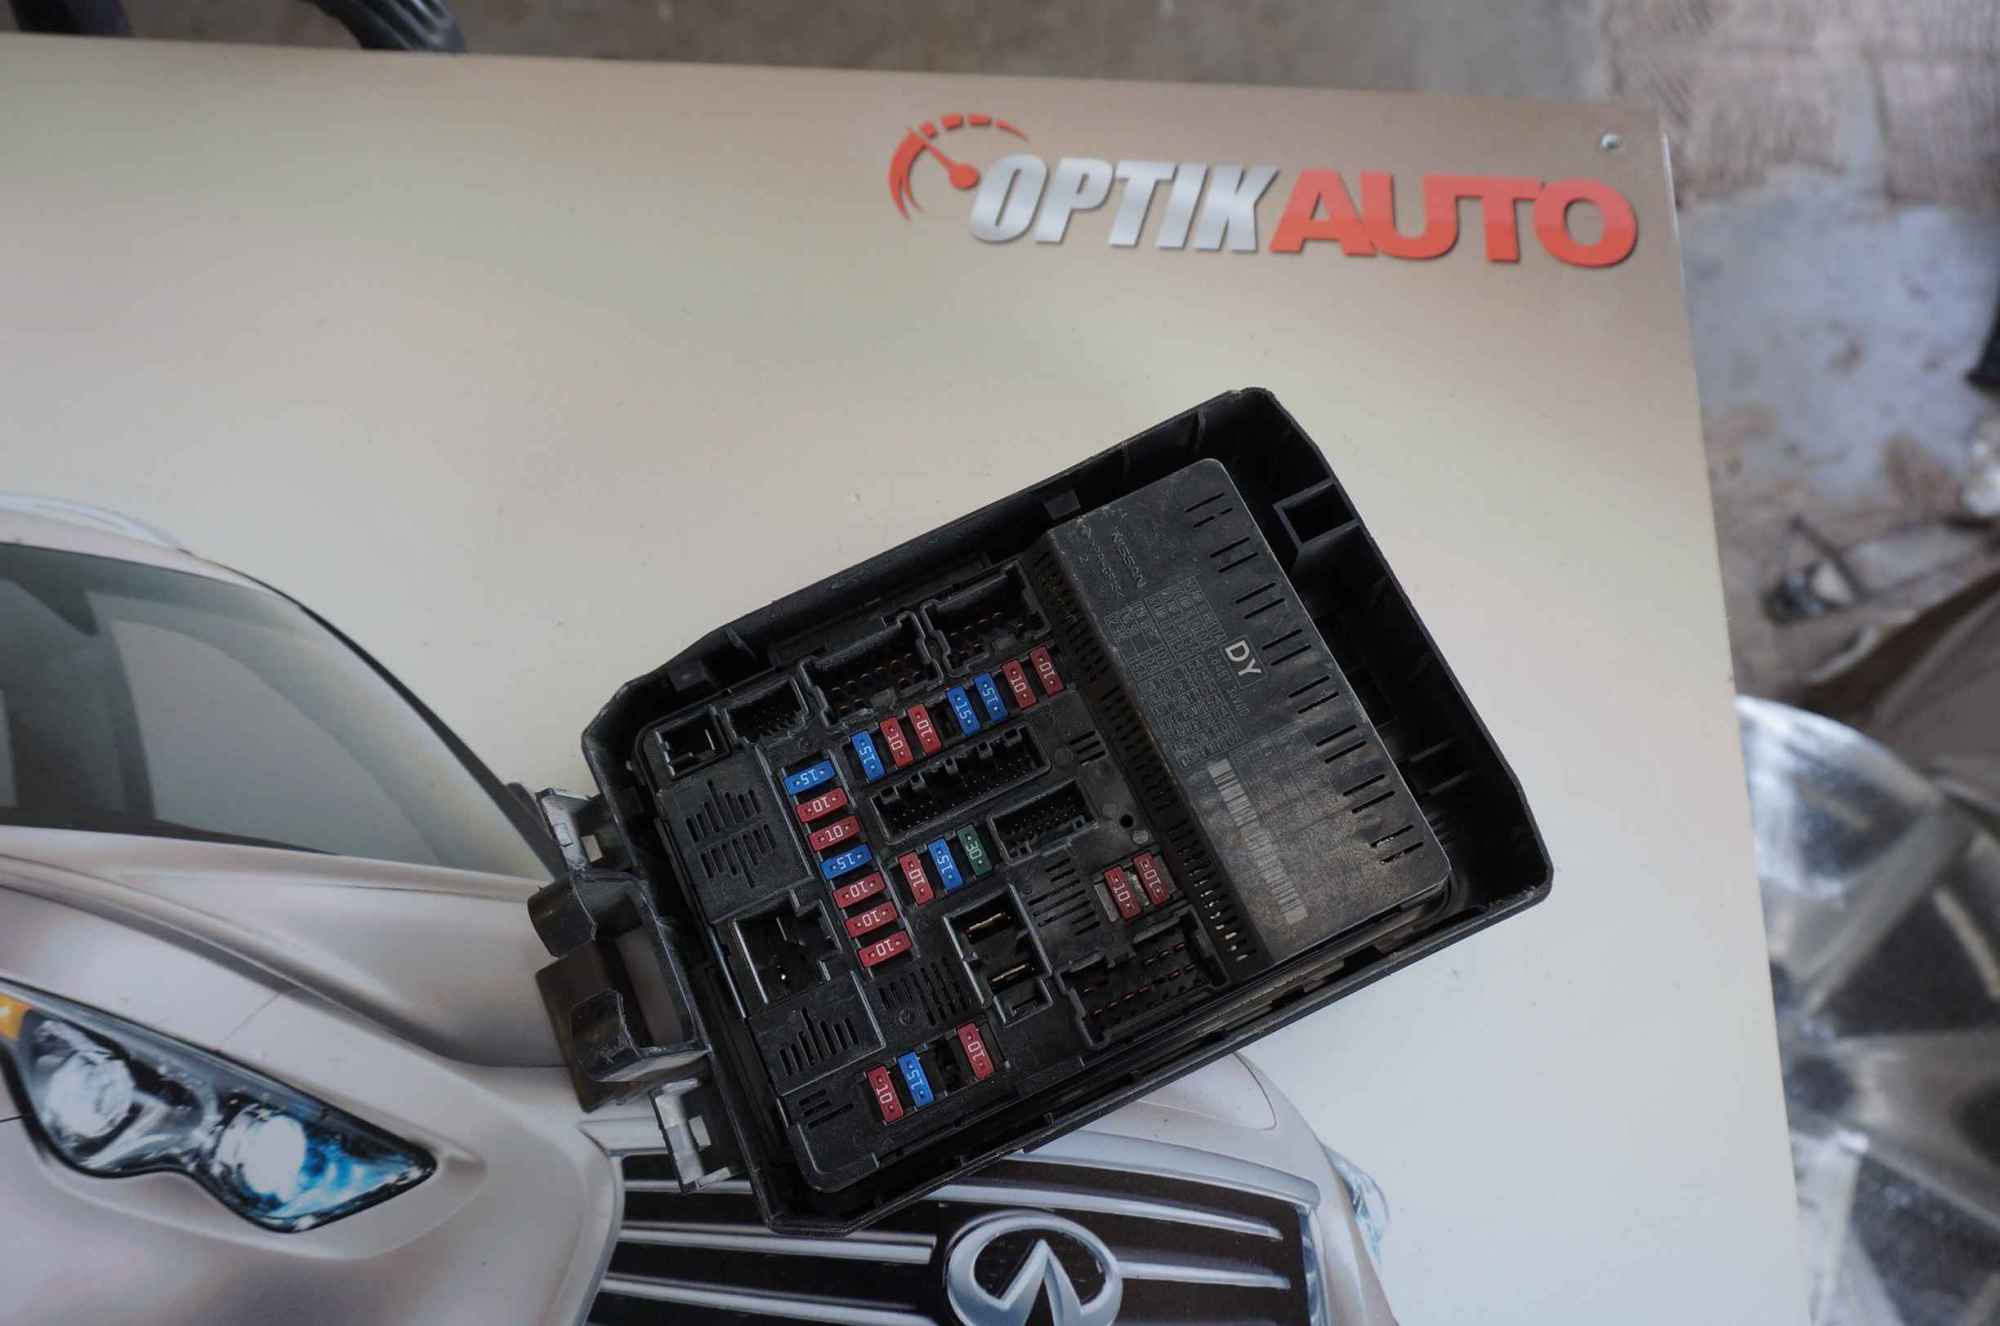 hight resolution of infiniti q50 qx60 2014 2016 ipdm fuse box 284b73jv0d optikauto infiniti q50 fuse box location infiniti